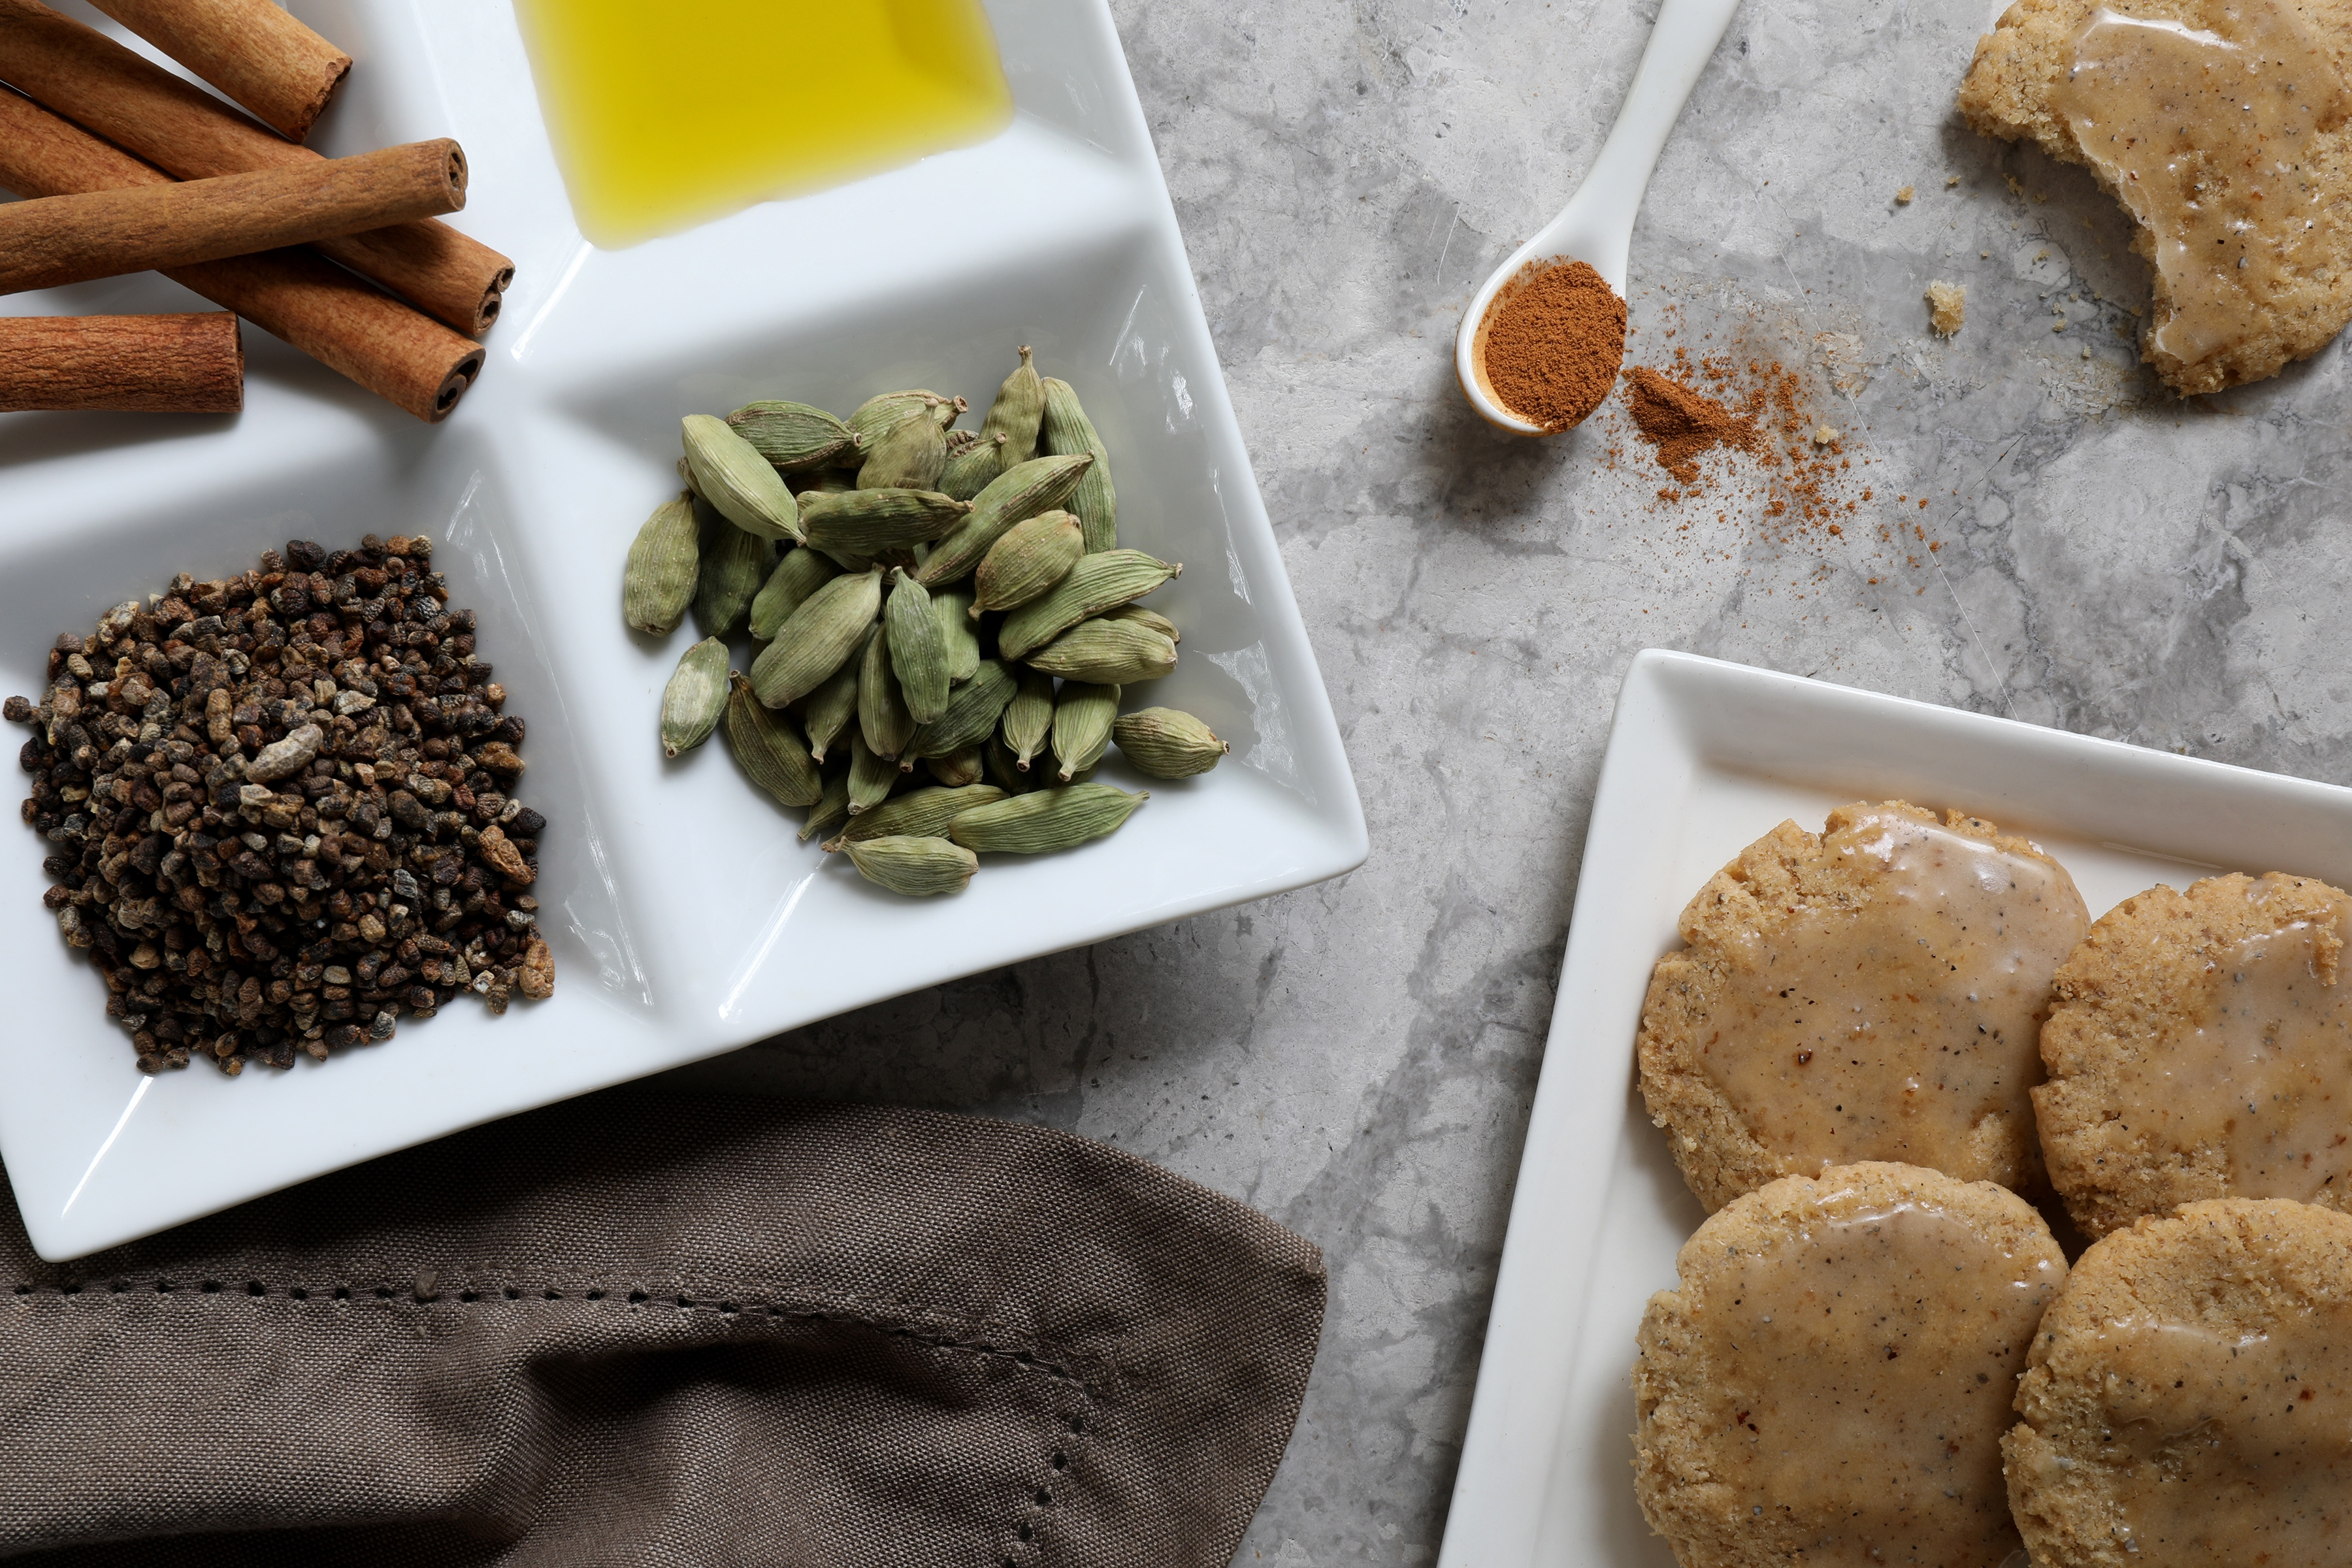 Ingredients for cardamom cookies on counter, plate of cardamom pods, cinnamon sticks, almond  oil